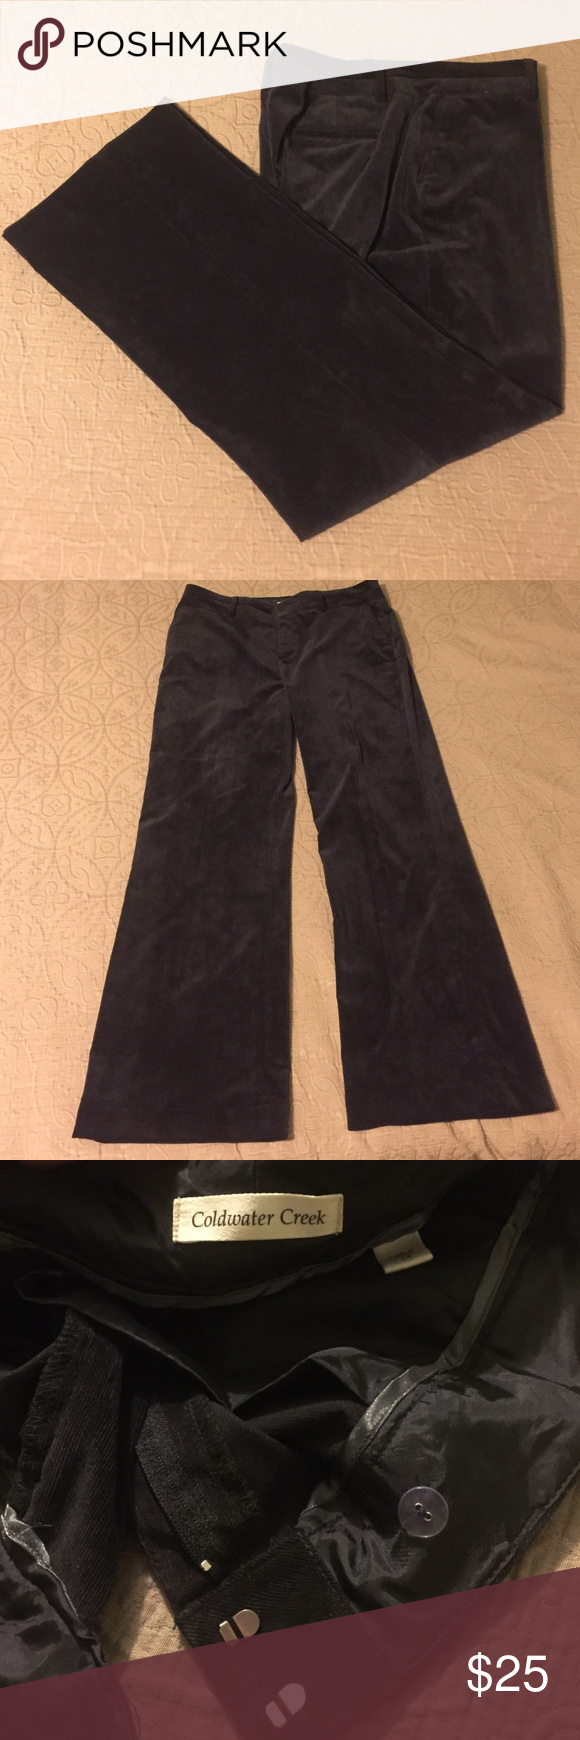 """Coldwater Creek Dress Pants Black Coldwater Creek dress pants.  31"""" inseam.  2 front pockets, 2 back pockets (still stitched).  Zipper, 2 clasp, 1 button close.  87% polyester/10% nylon/3% spandex.  These pants are so comfortable!  They have the look of corduroy and the feel of lightweight velvet. Excellent used condition! Coldwater Creek Pants Trousers"""